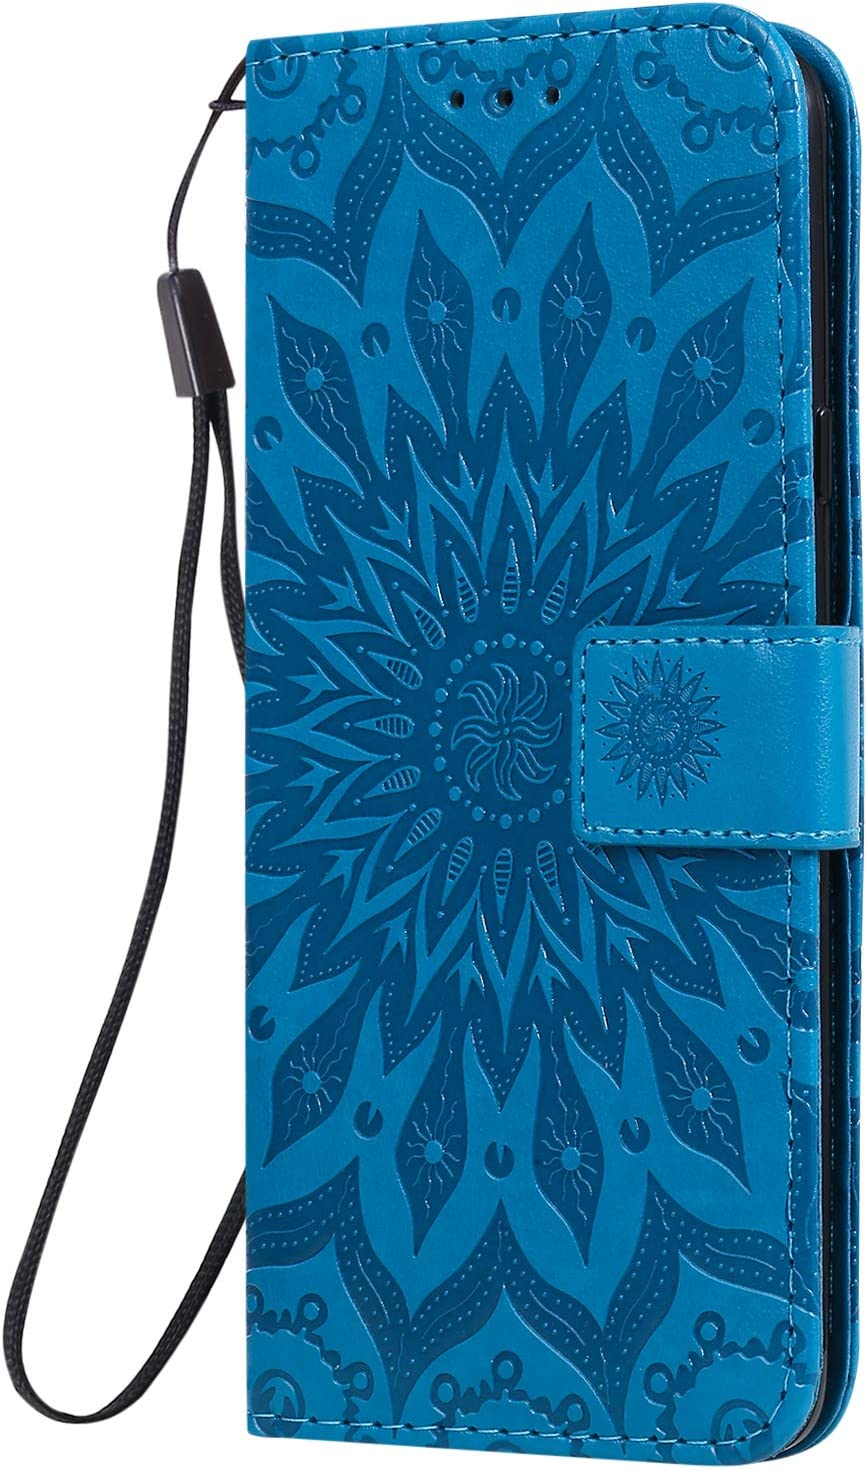 NEXCURIO Wallet Case for Galaxy A20S with Card Holder Side Pocket Kickstand NEKTU020522 Blue Shockproof Leather Flip Cover Case for Samsung Galaxy A20S